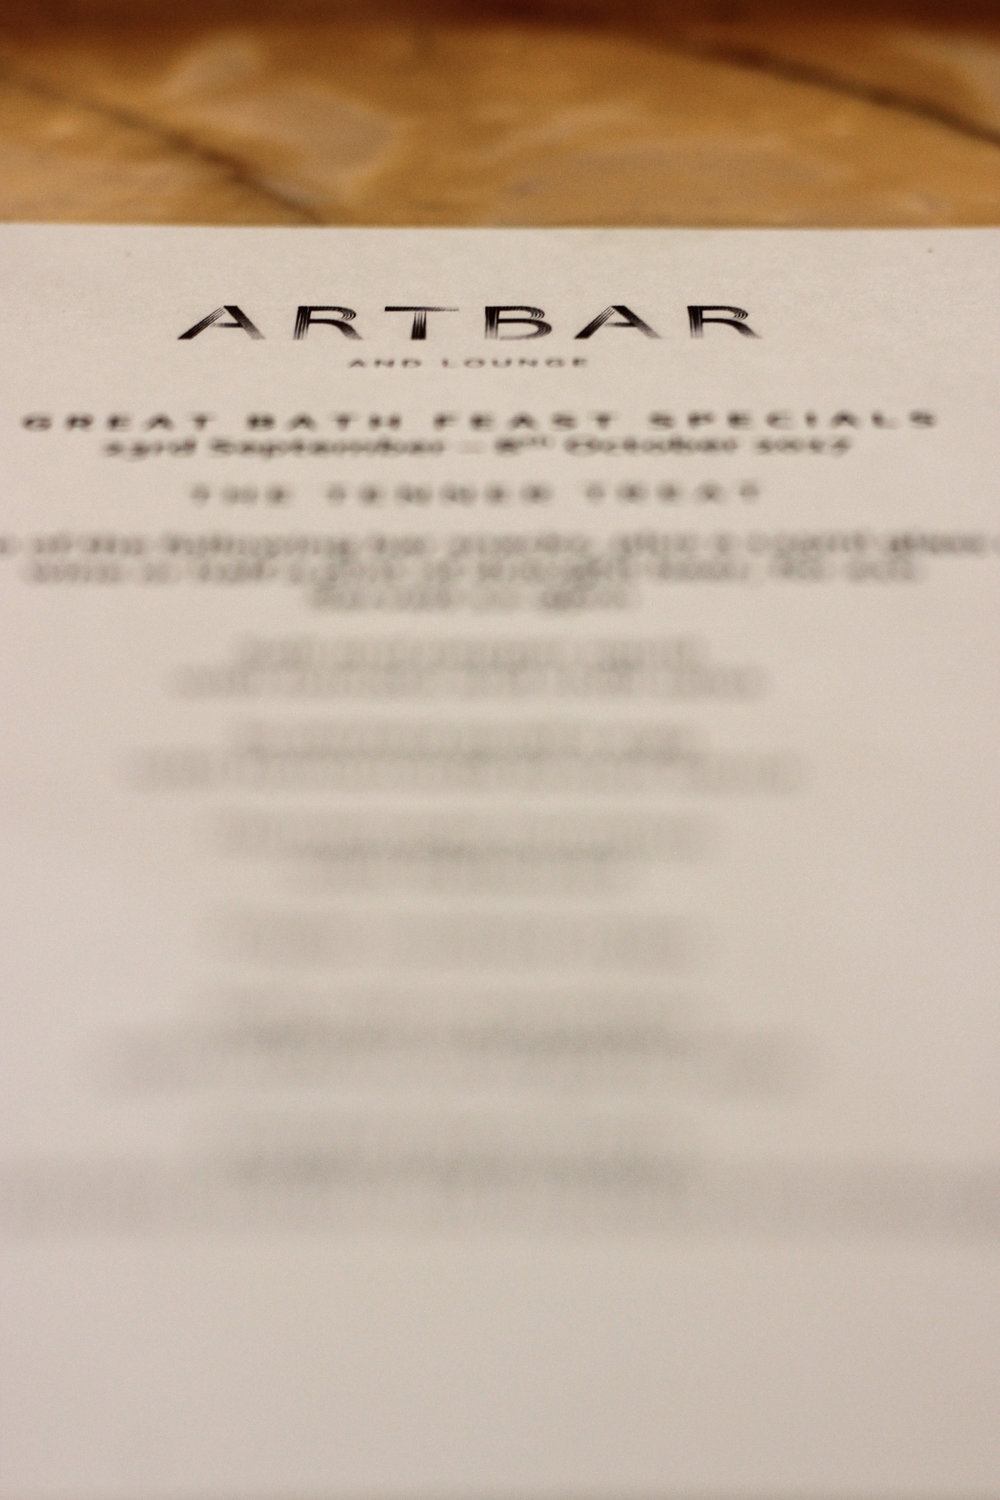 ArtBar The Abbey Hotel The Great Bath Feast Restaurant Review